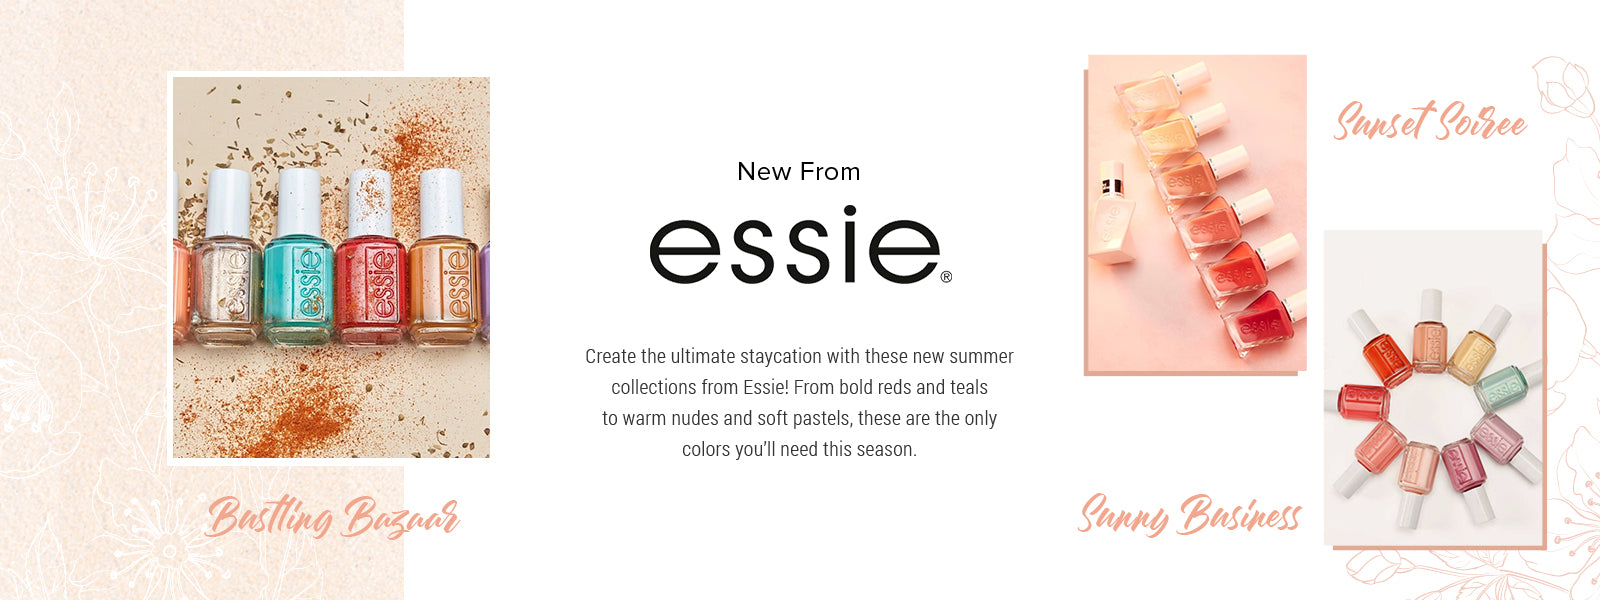 Essie Bustling Bazaar, Sunny Business & Sunset Soiree Collections